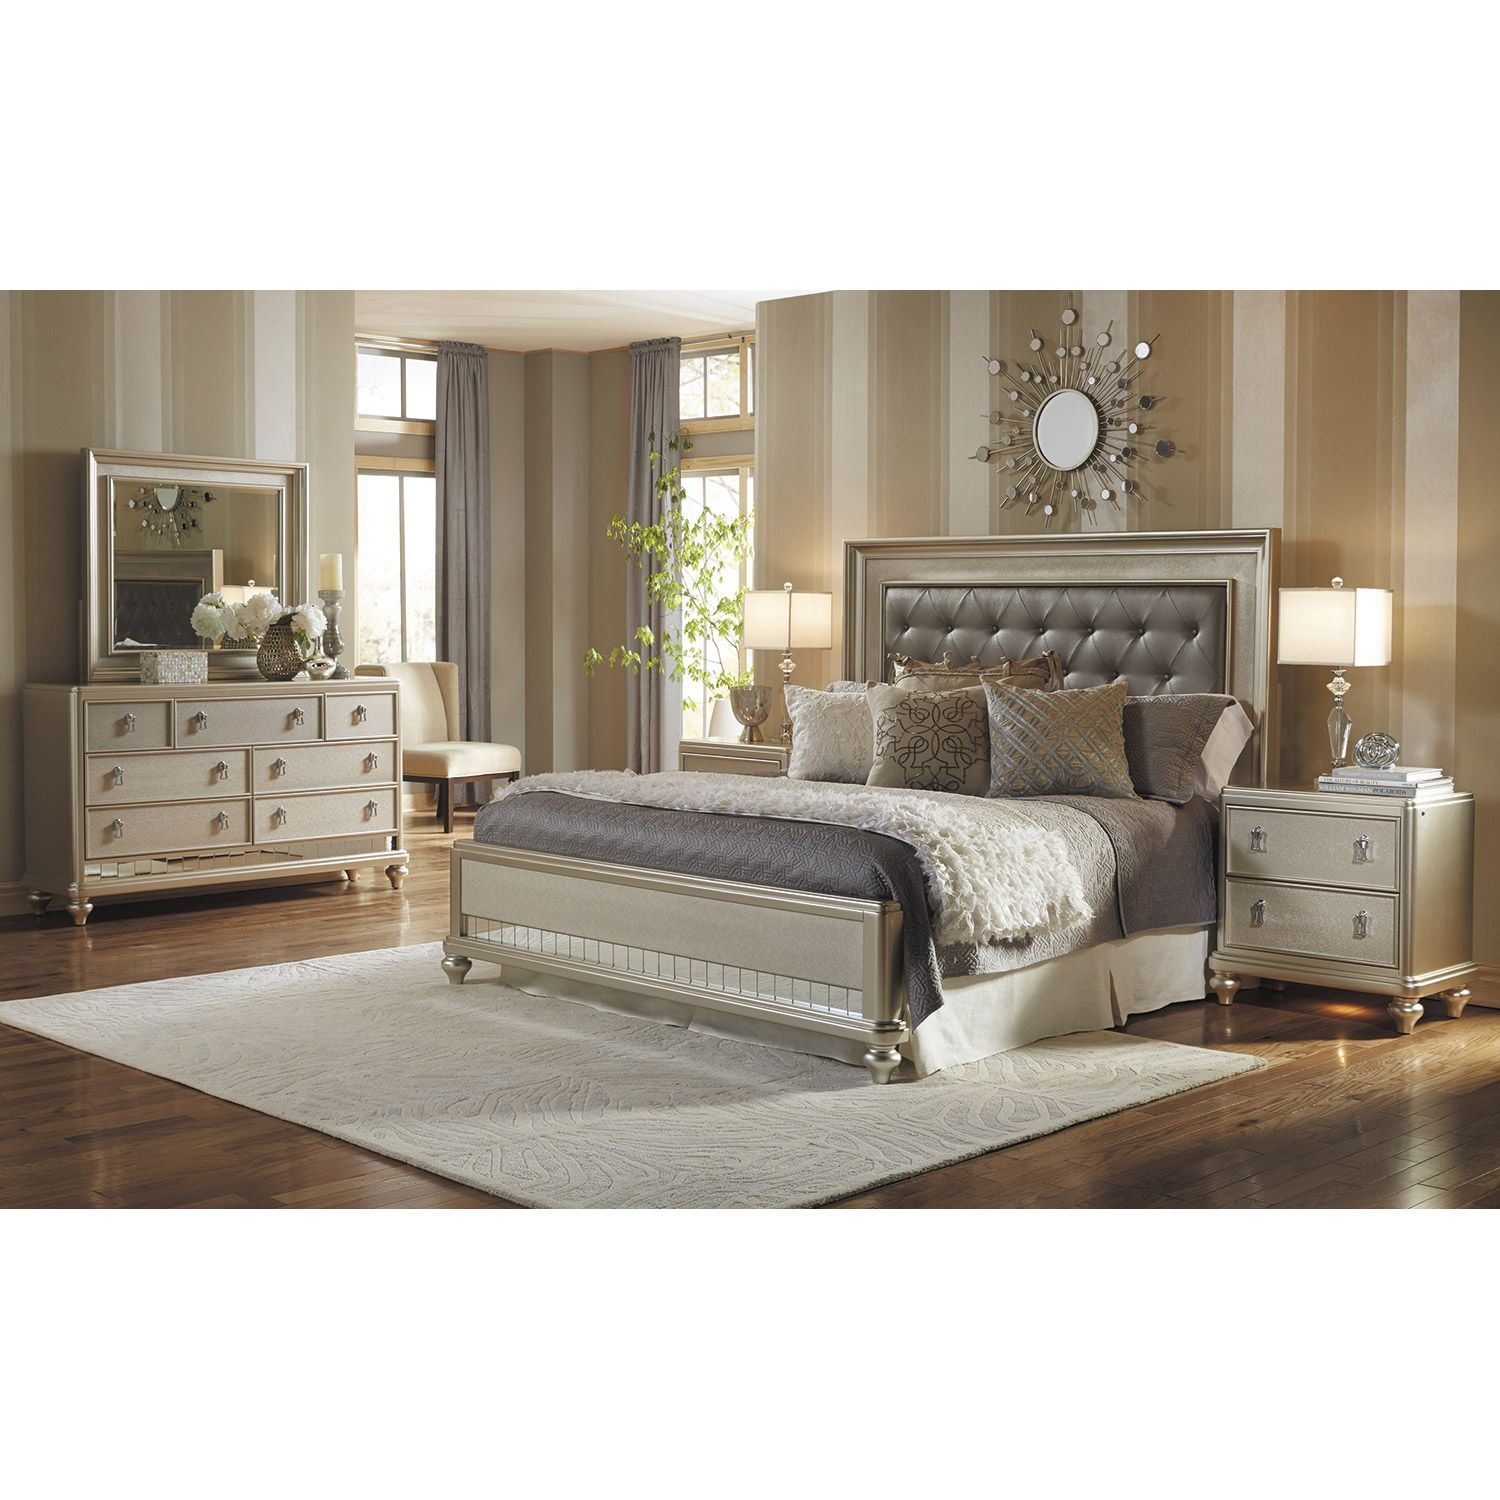 Diva 5 Piece Bedroom Set 8808 Queenbed10305040 Samuel